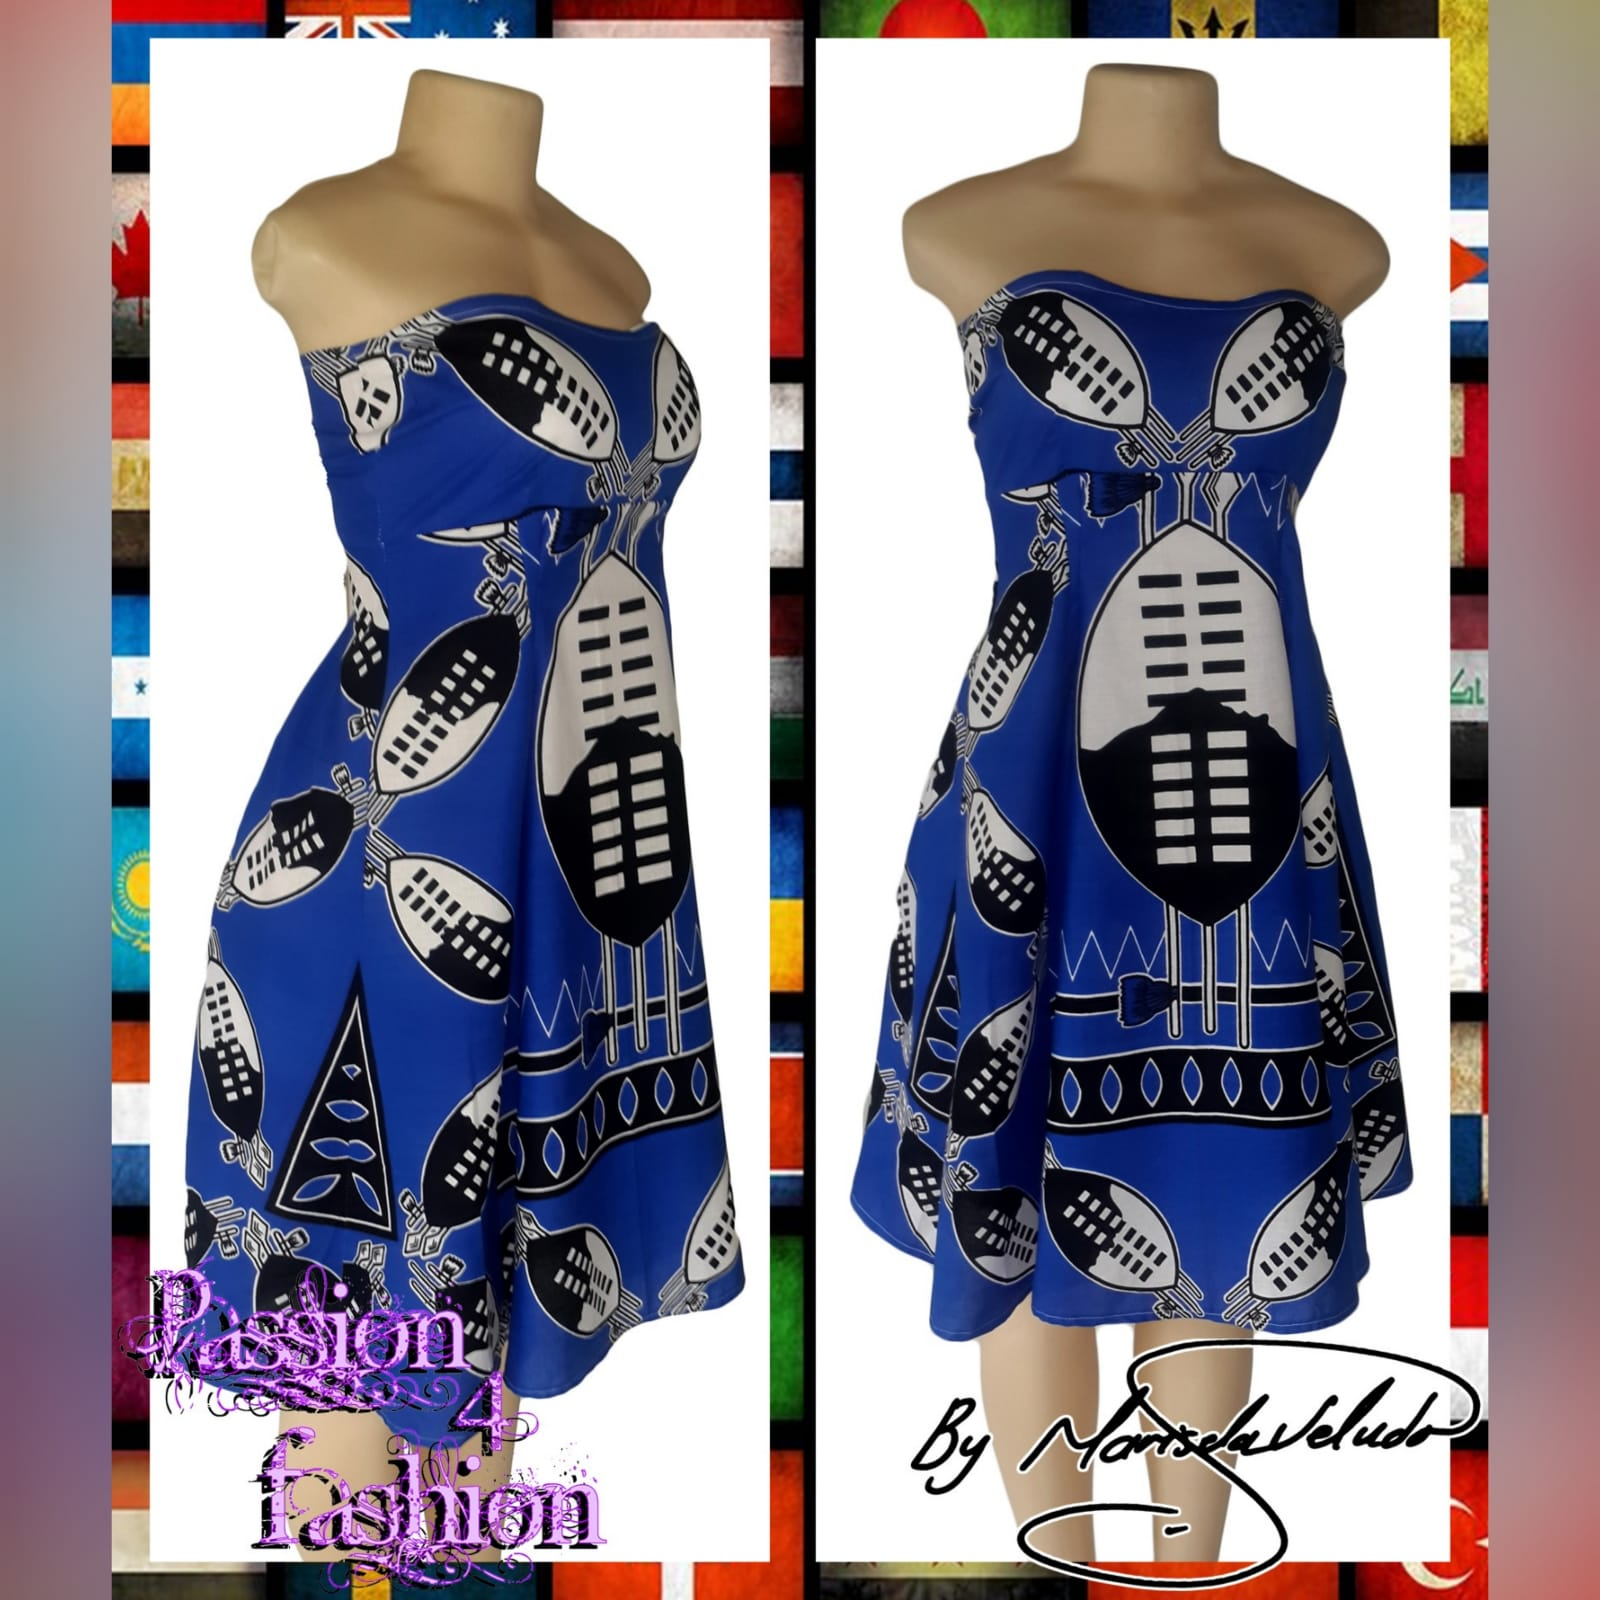 Modern traditonal royal blue swazi dress 4 swati royal blue boob tube knee length dress. Delivered to client